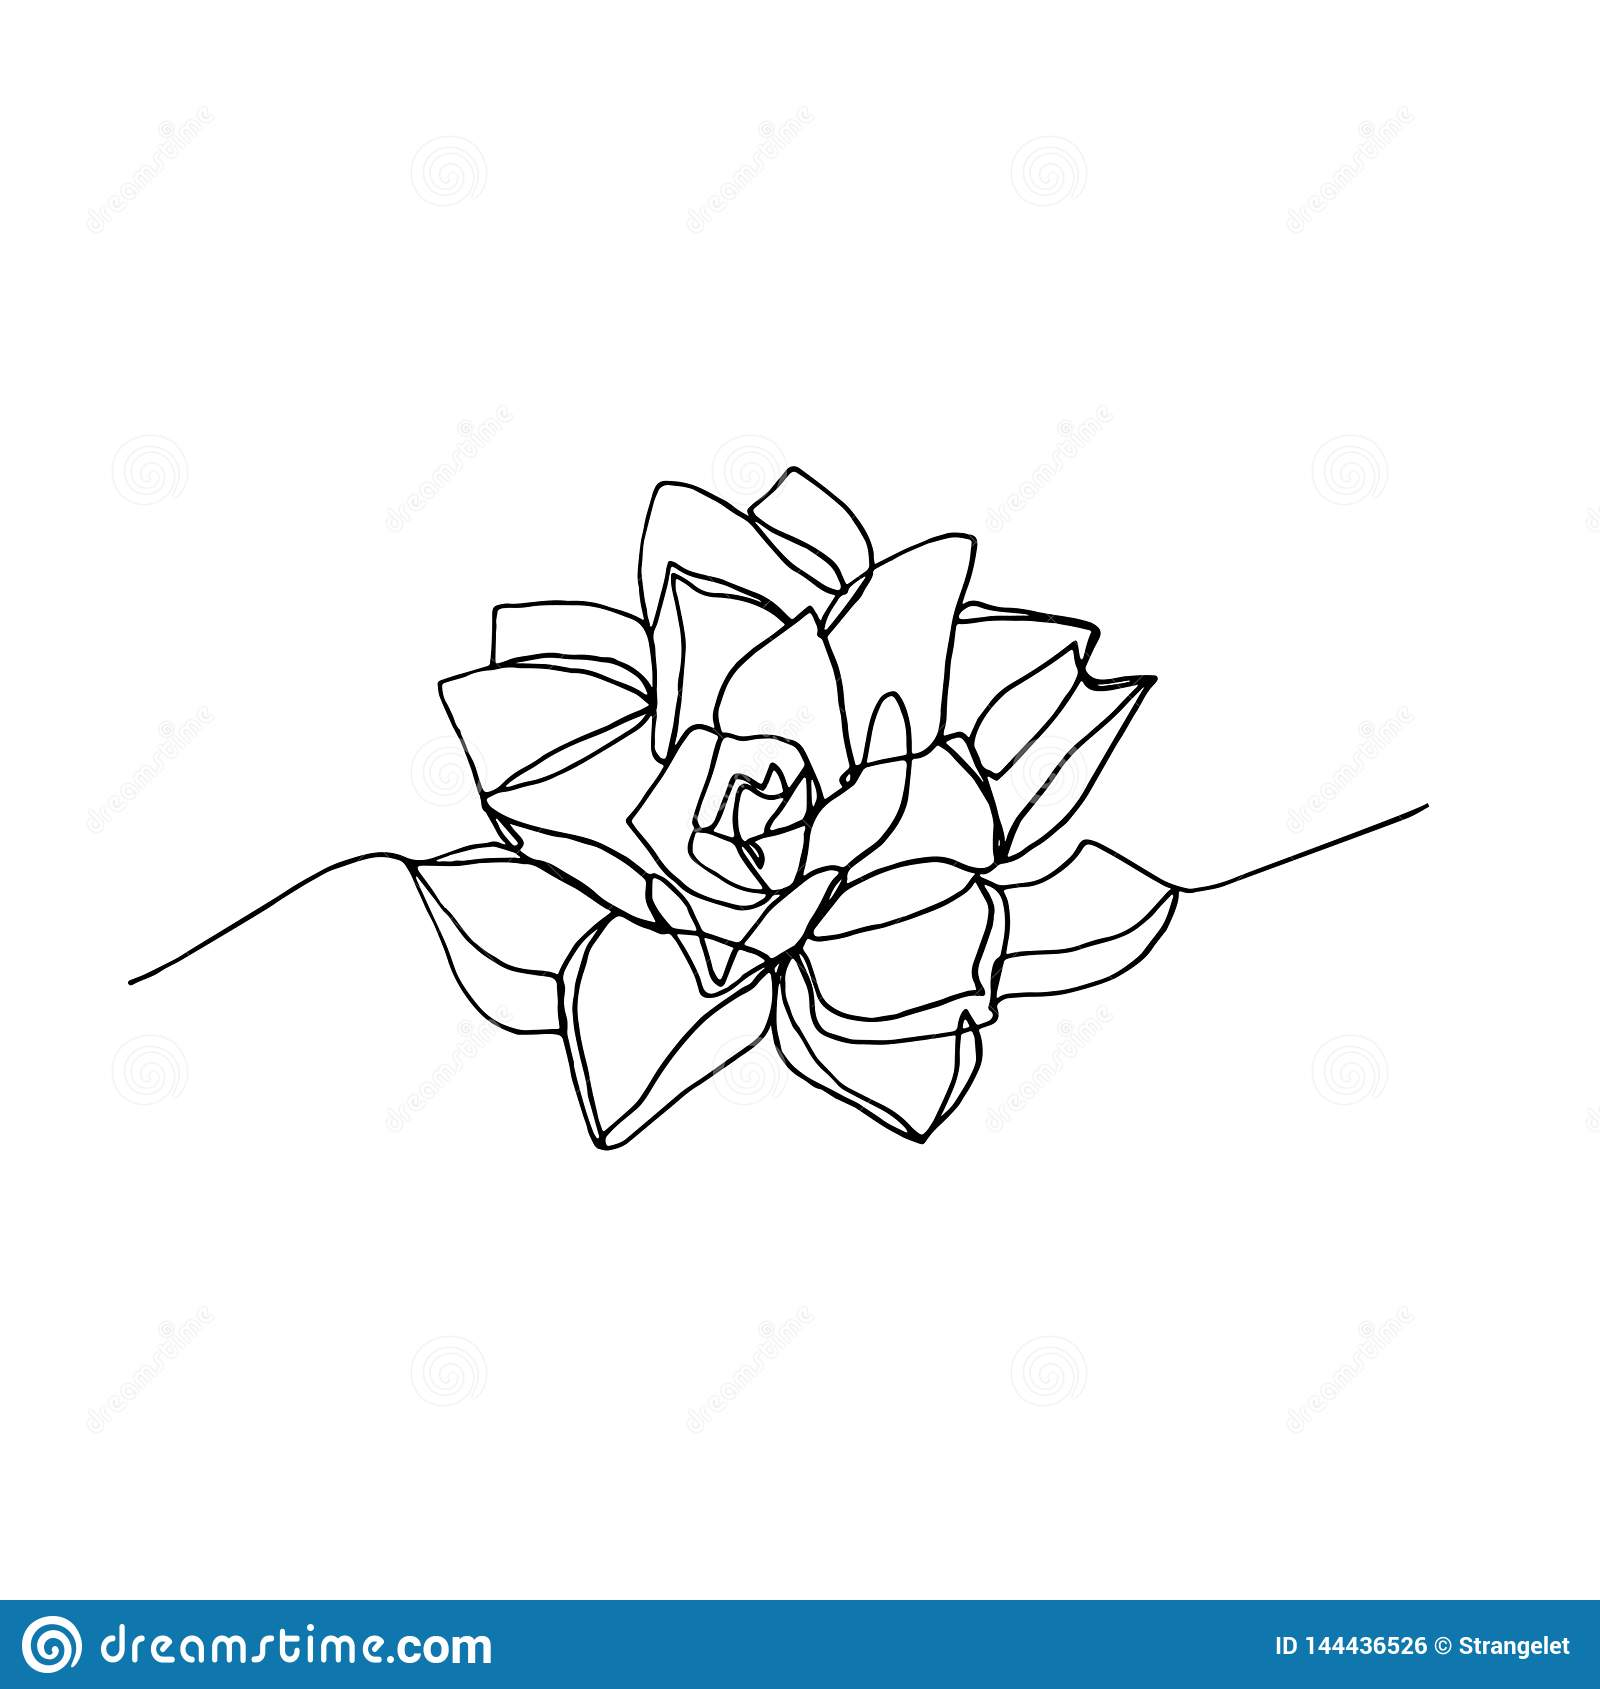 Hand Drawn Minimalistic Succulent One Single Continuous Black Line Simple Drawing Stock Illustration Illustration Of Continuous Contour 144436526